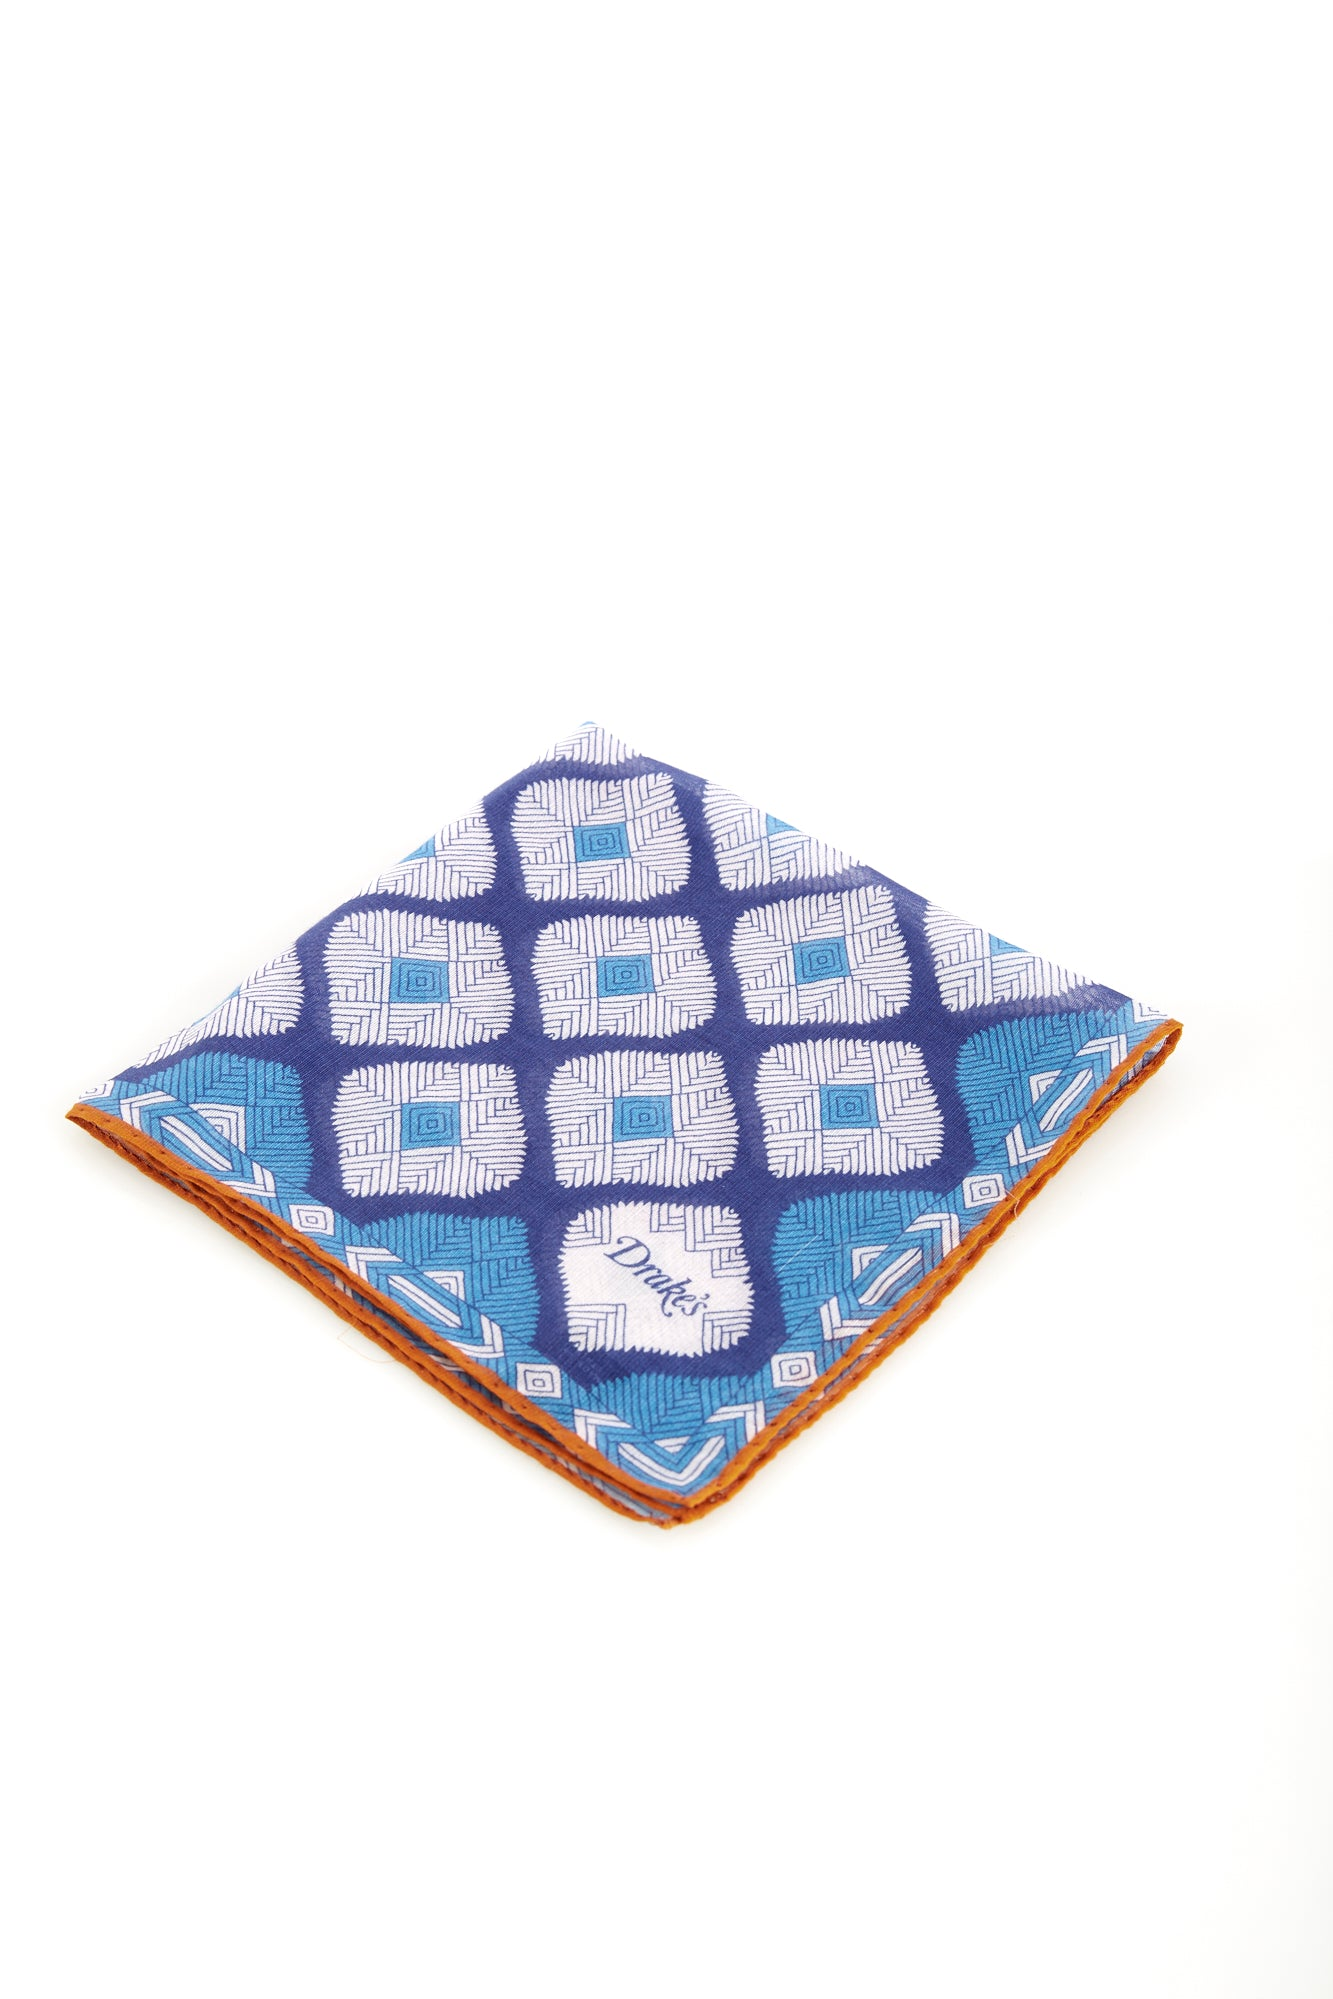 Drake's Light Blue Abstract Diamond Printed Cotton Pocket Square - Accessories - Drake's - LALONDE's